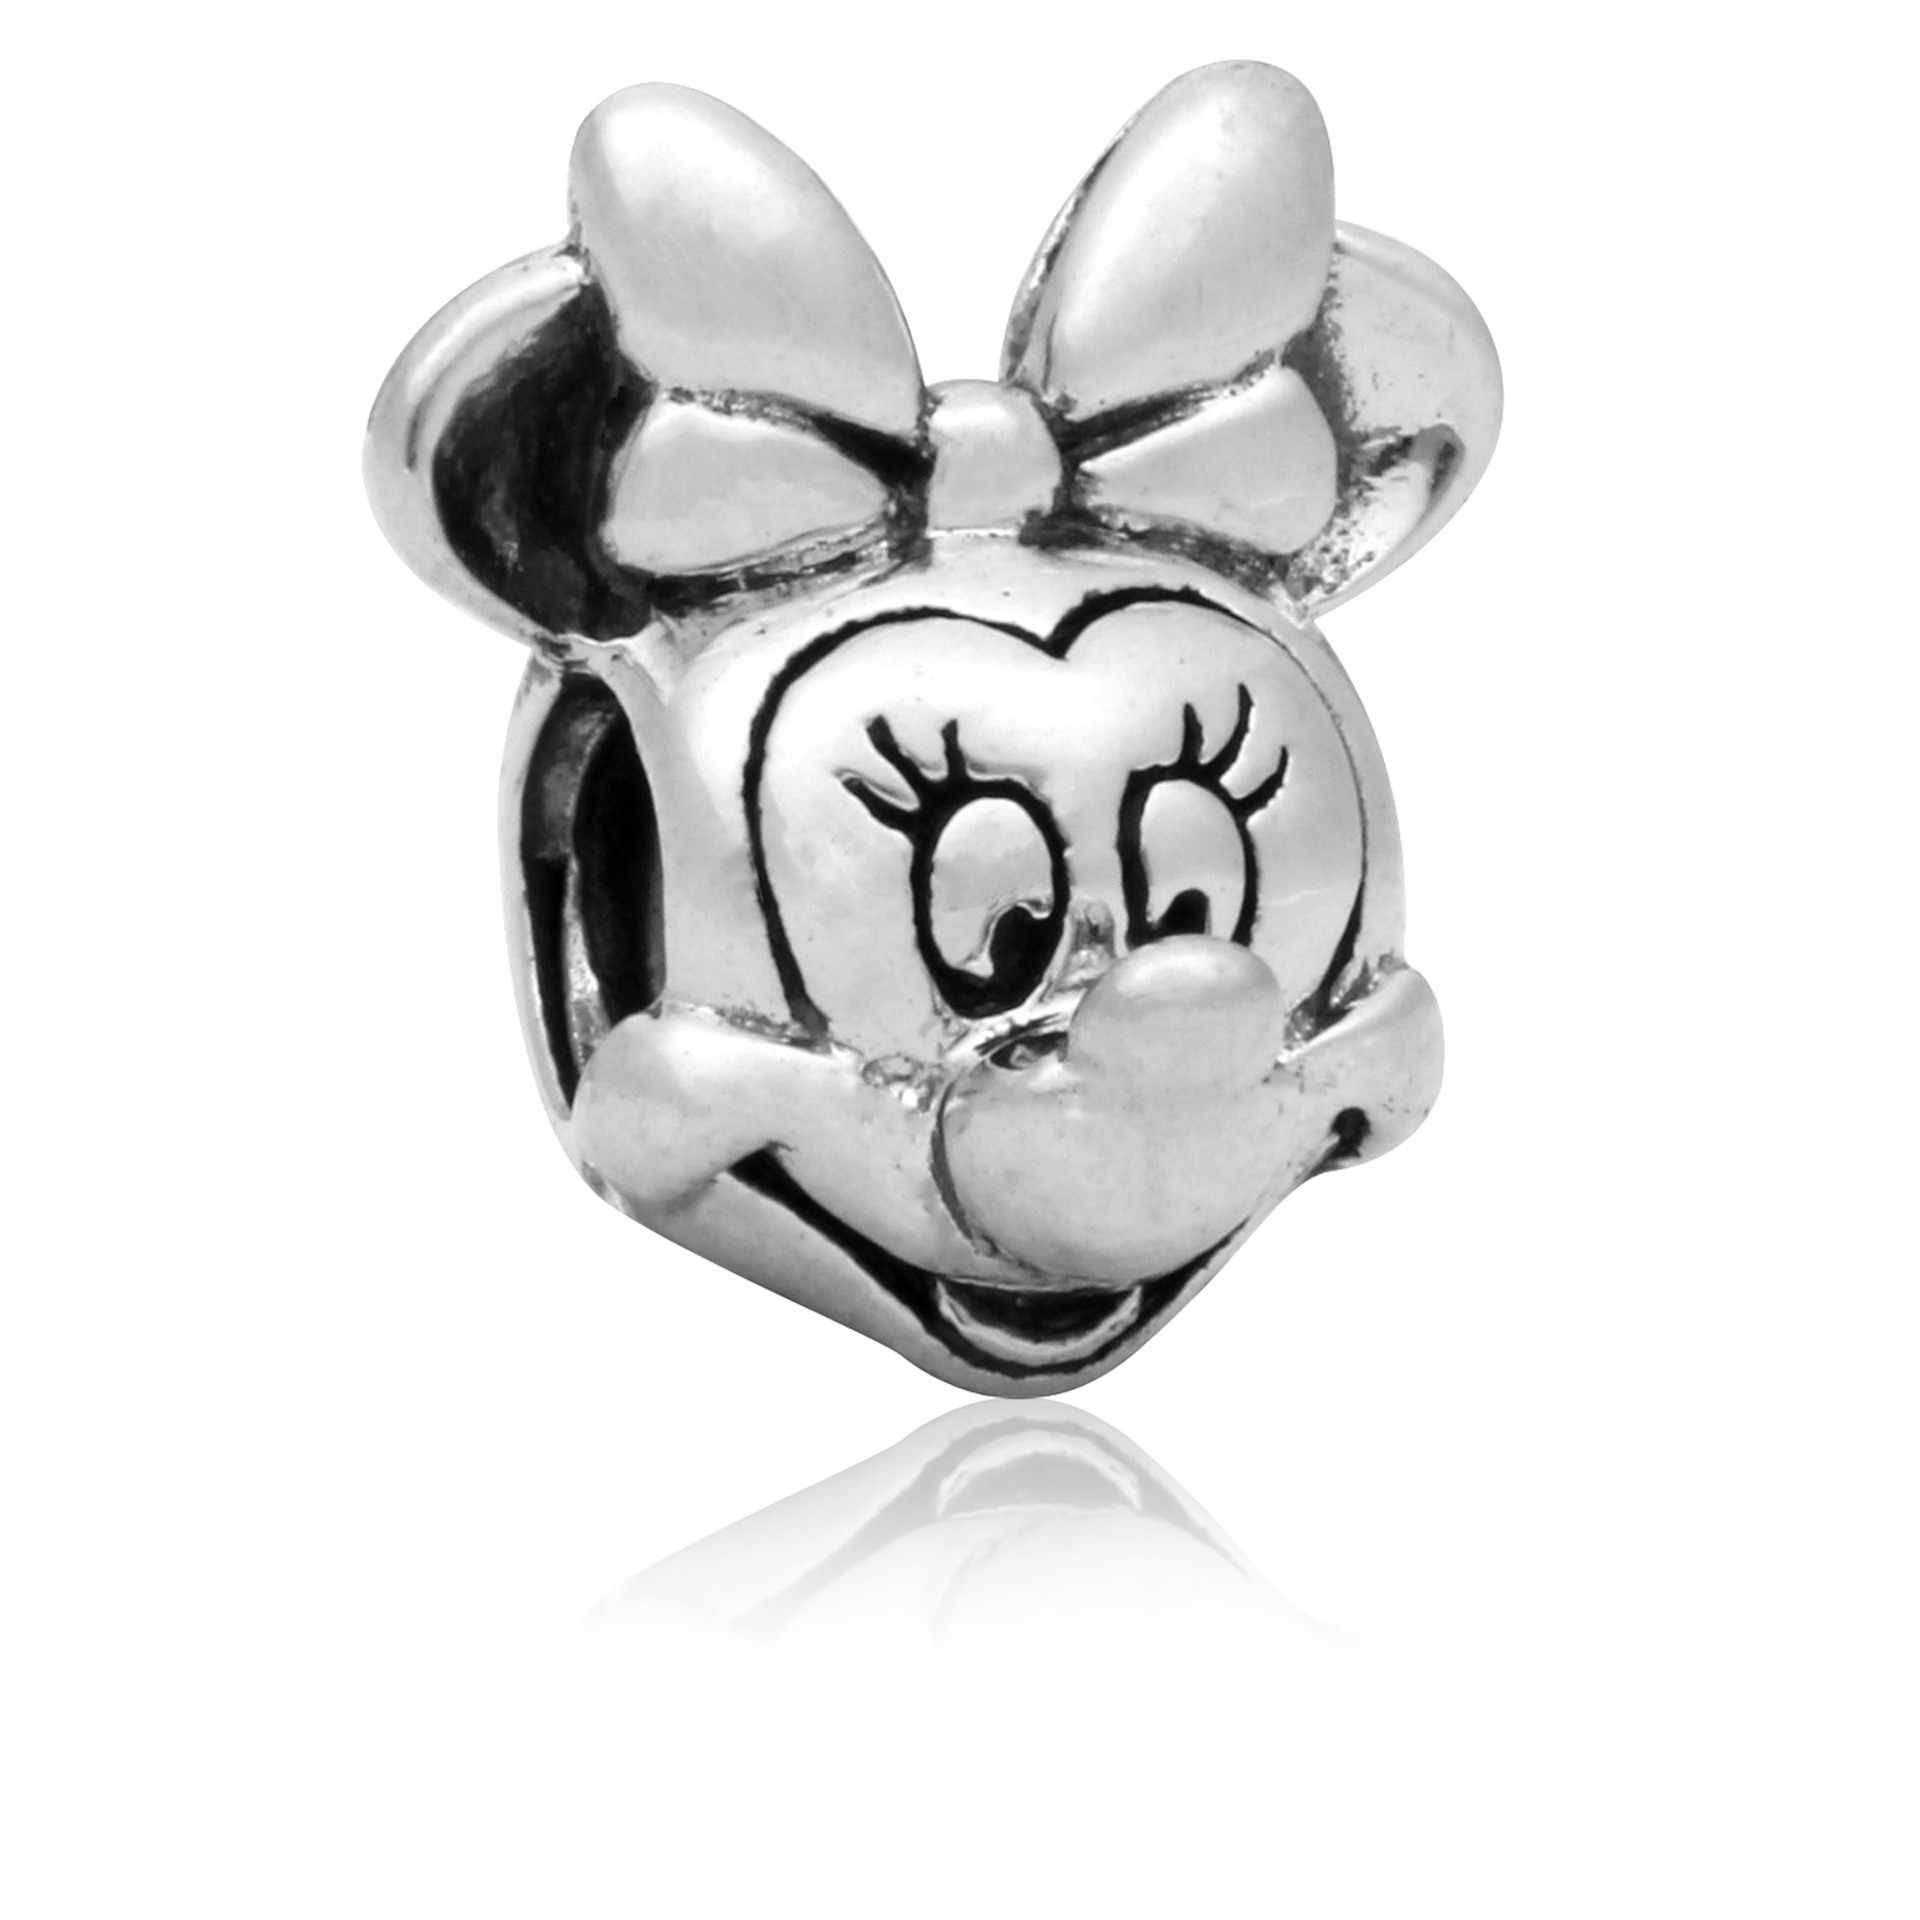 1pc bijoux micky mouse beads silver sieraden DIY large hole bisuteria Fit bracciale  bracelet cartoon charms  jewelry